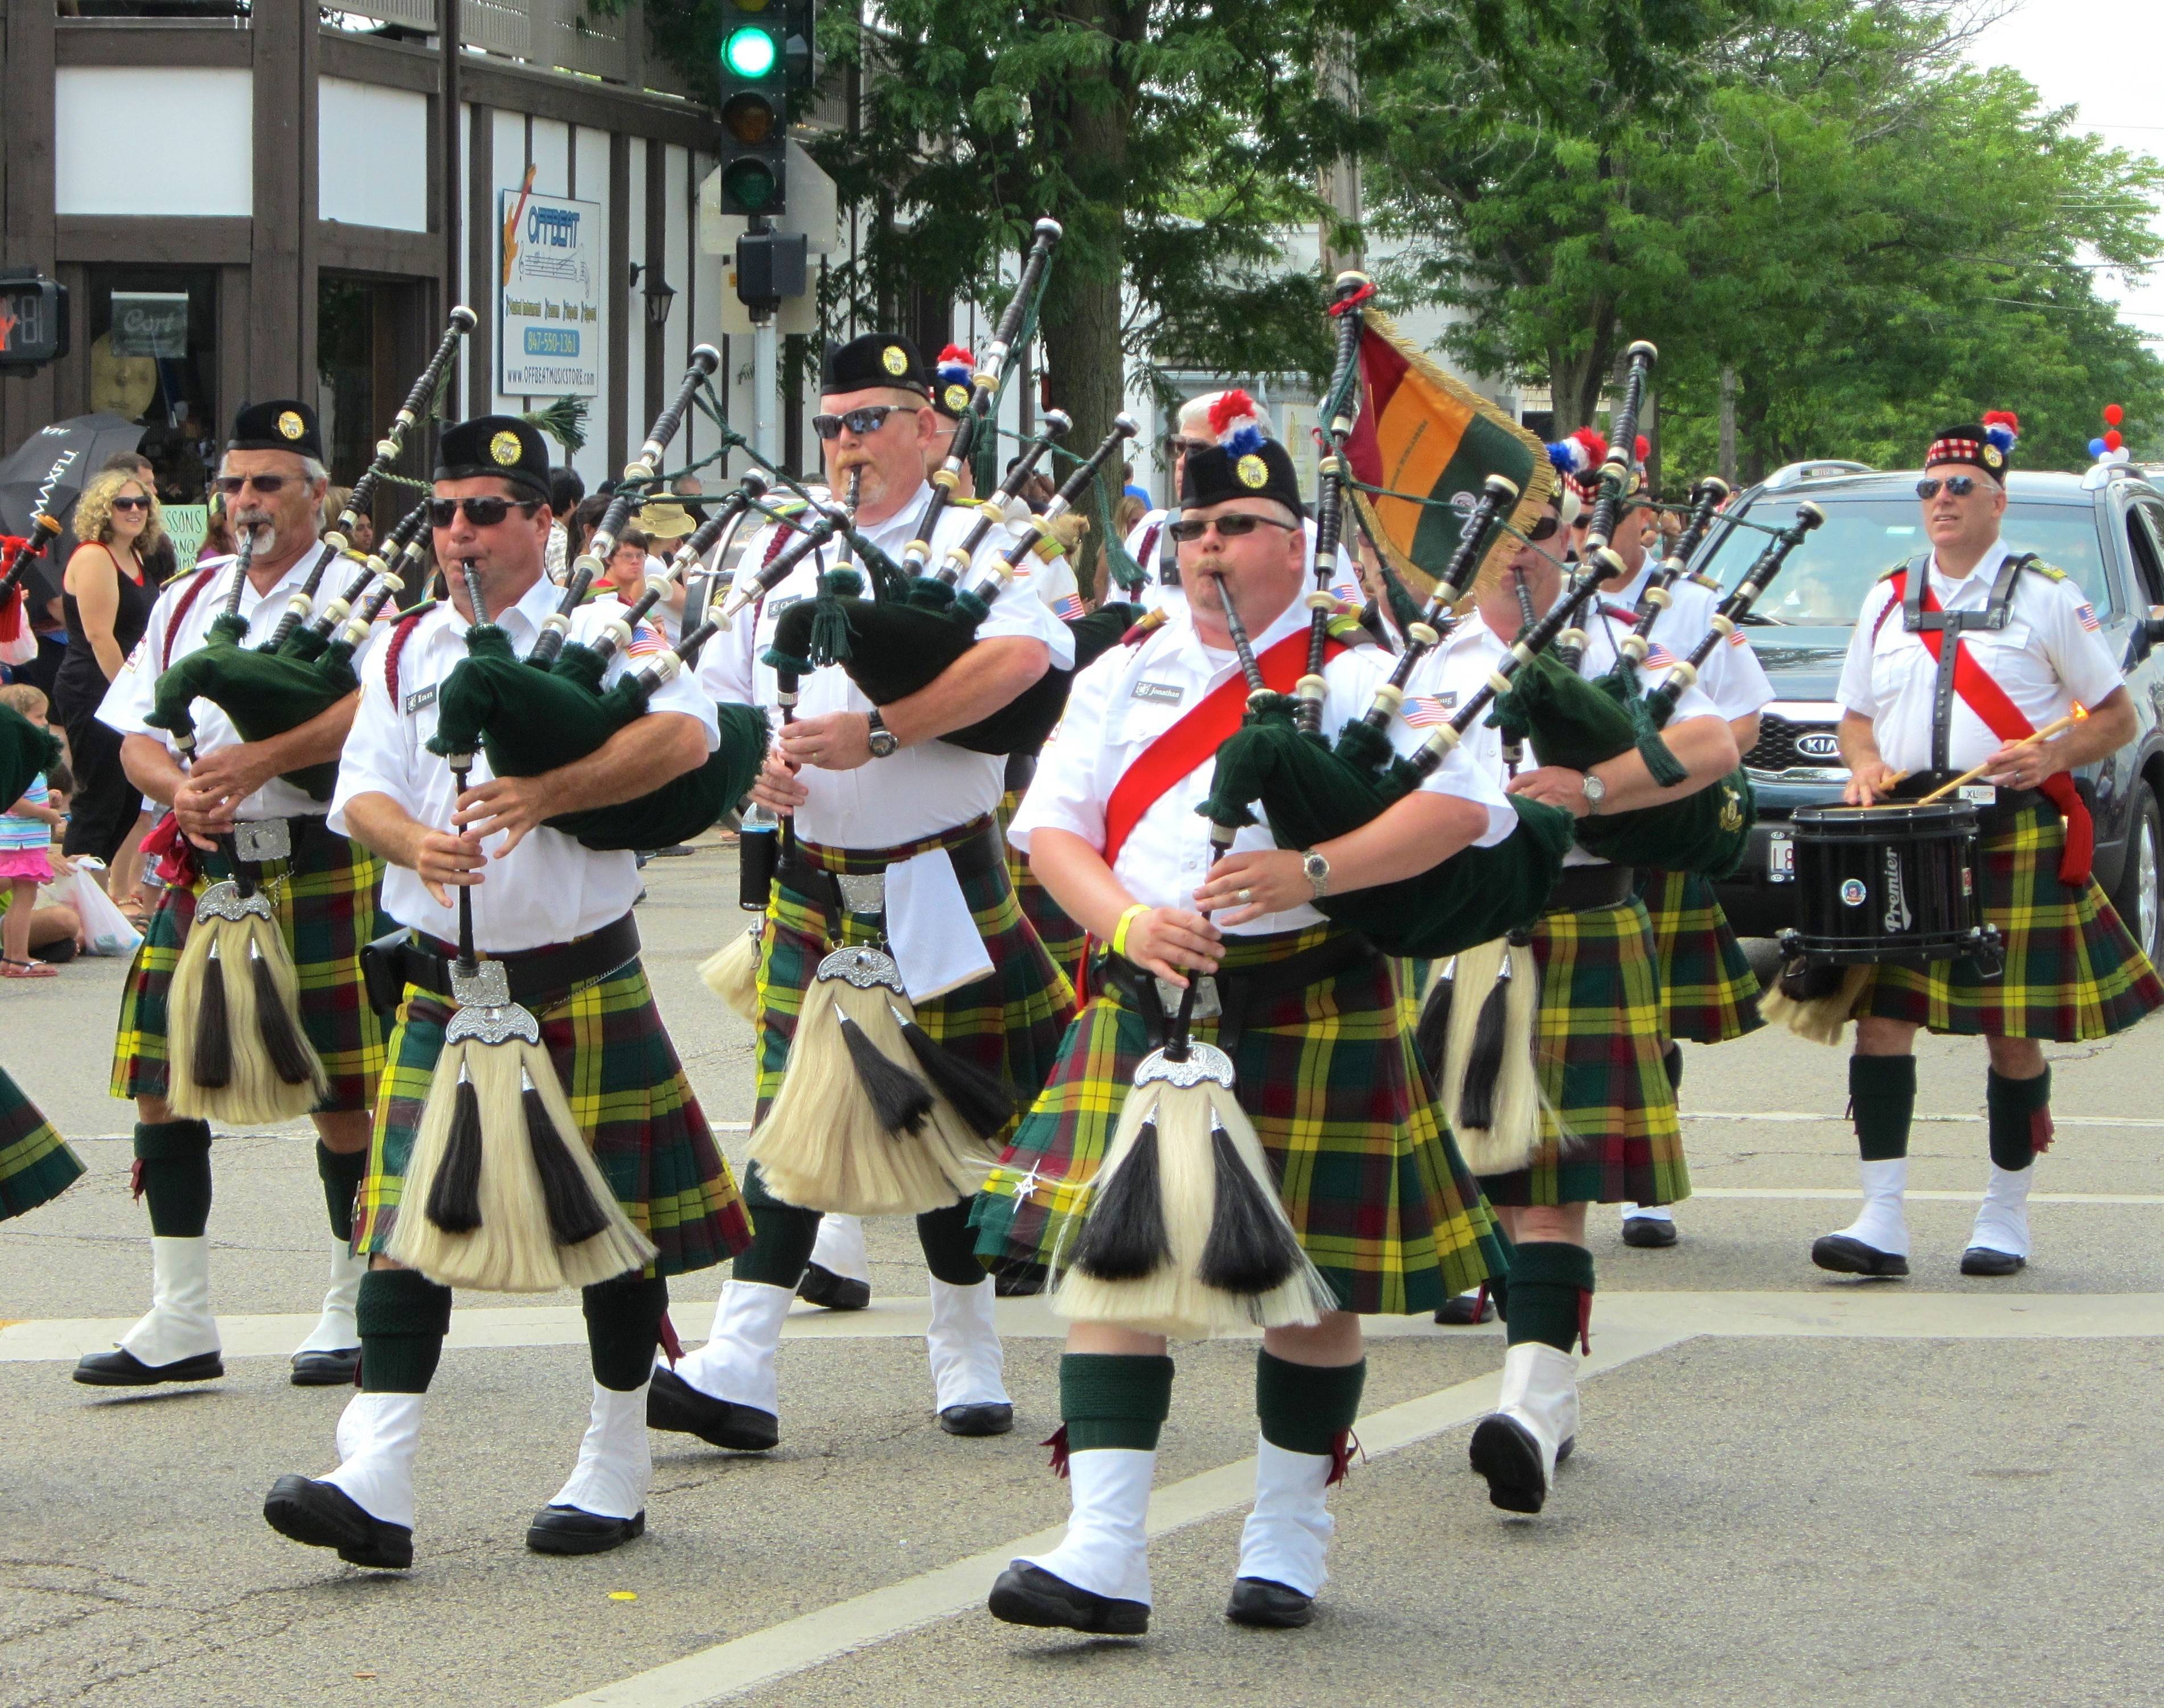 Bagpipers deliver their distinctive, soaring sounds during the Alpine Fest Parade on Sunday in Lake Zurich. The parade along Main Street in the village's downtown kicked off the last day of the annual summer event Alpine Fest.